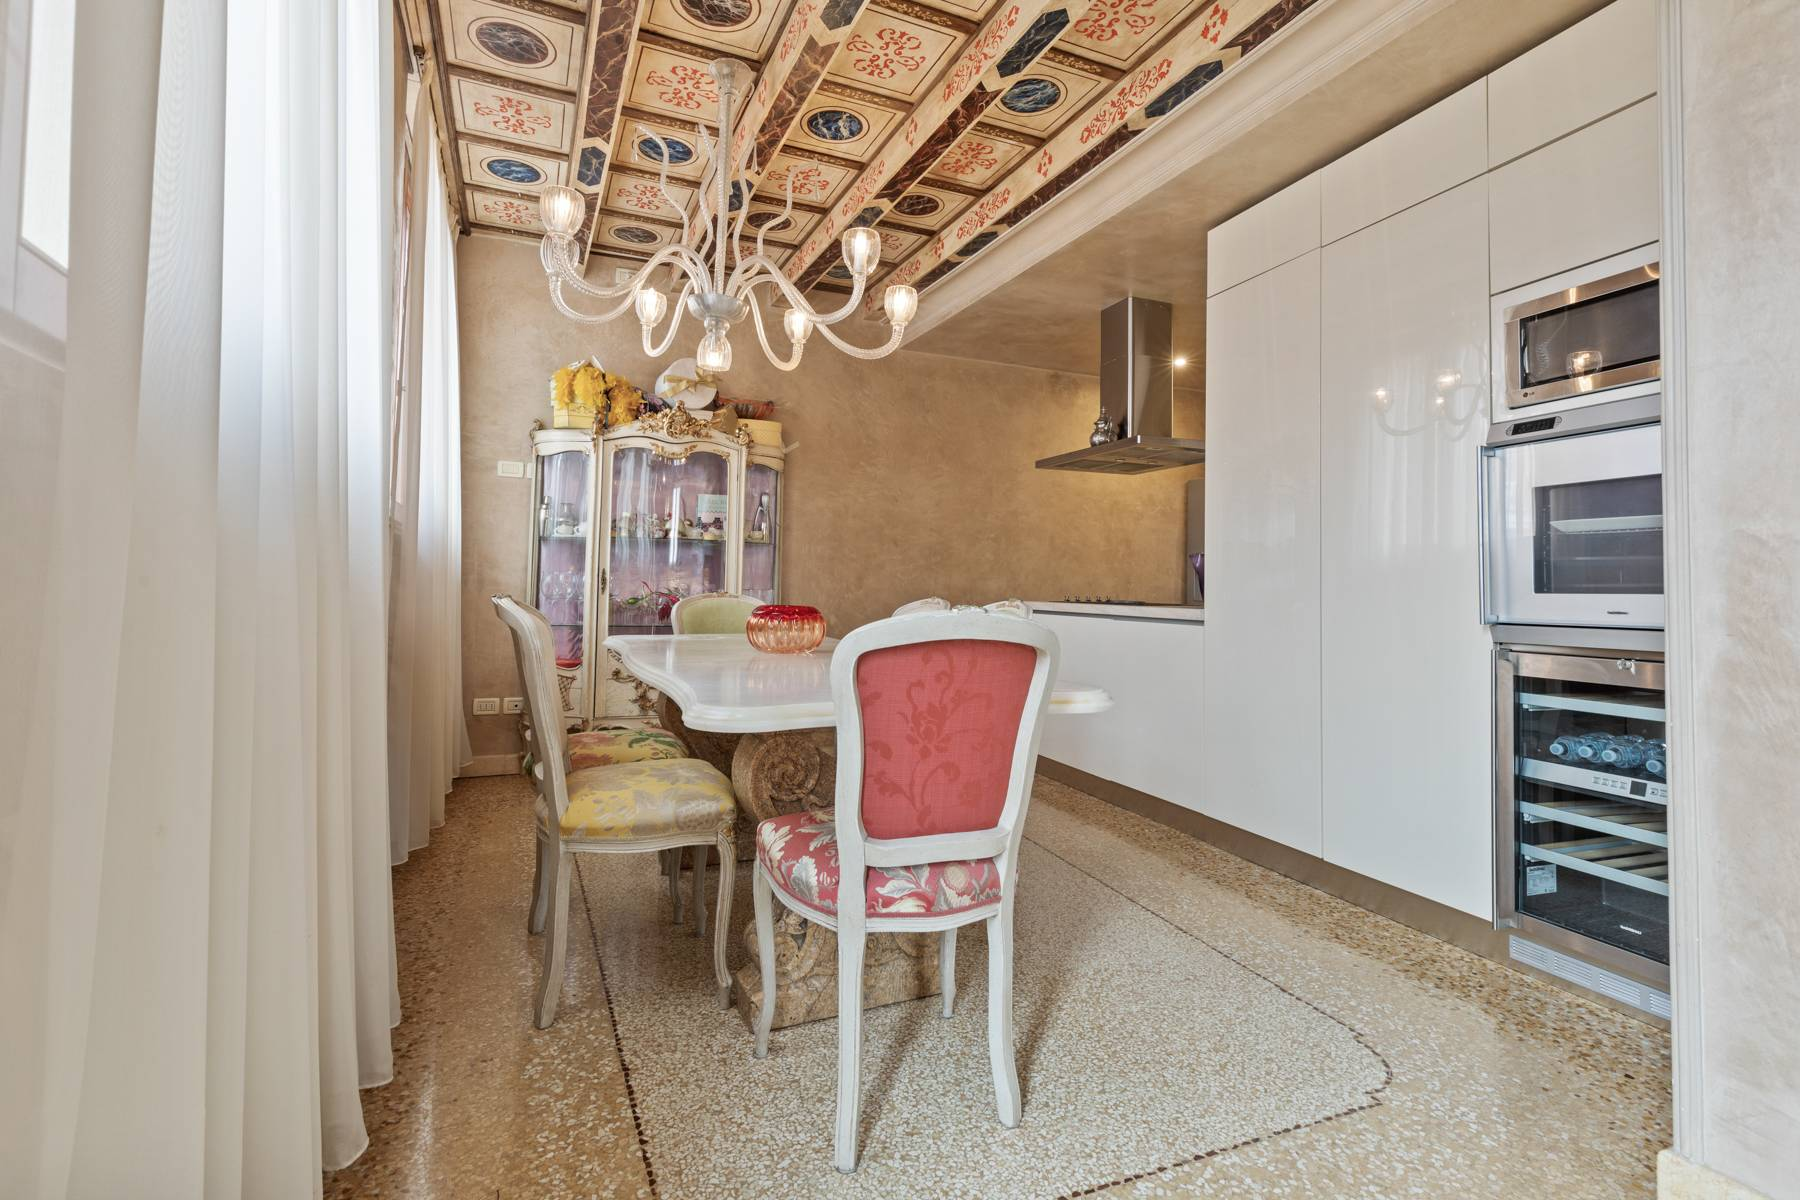 Elegant apartment in the heart of Verona on the corner of Via Mazzini and Piazza Erbe - 6